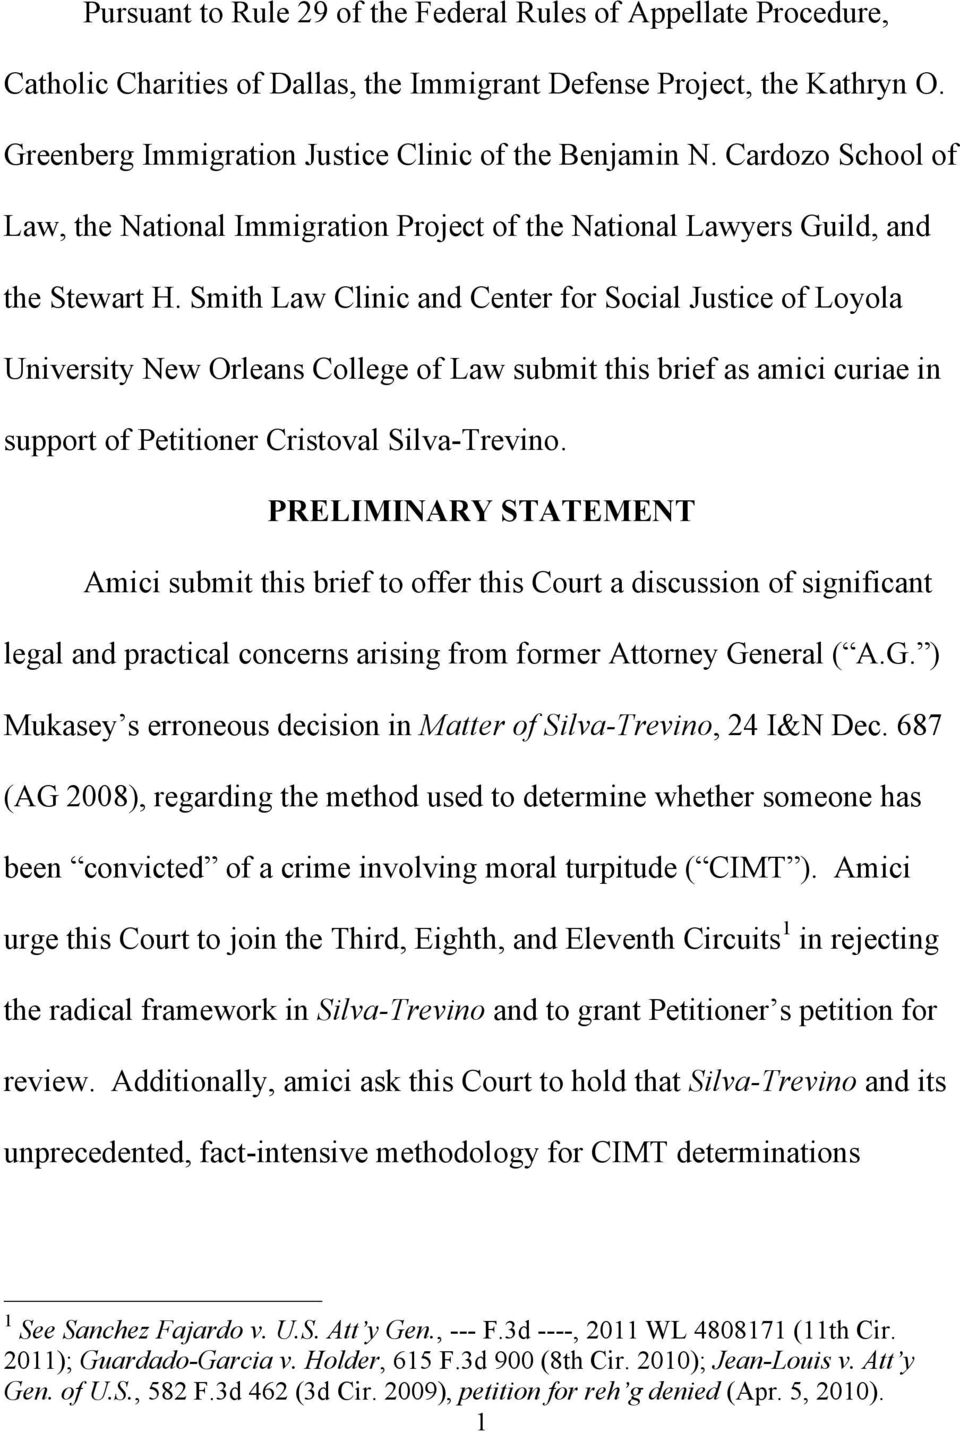 Smith Law Clinic and Center for Social Justice of Loyola University New Orleans College of Law submit this brief as amici curiae in support of Petitioner Cristoval Silva-Trevino.